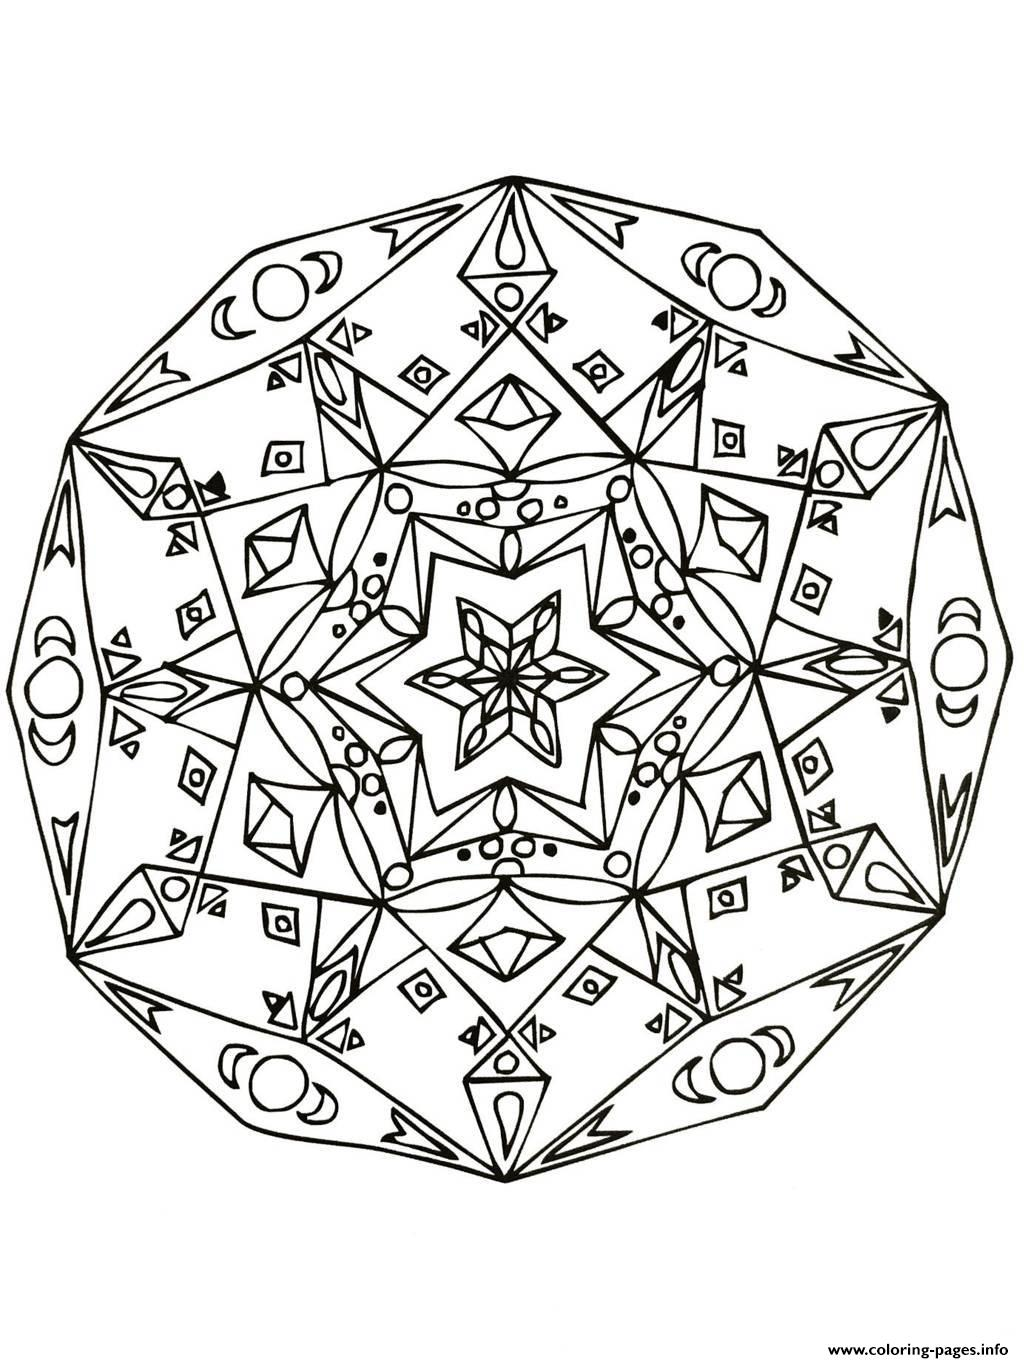 Mandalas To Download For Free 24  coloring pages